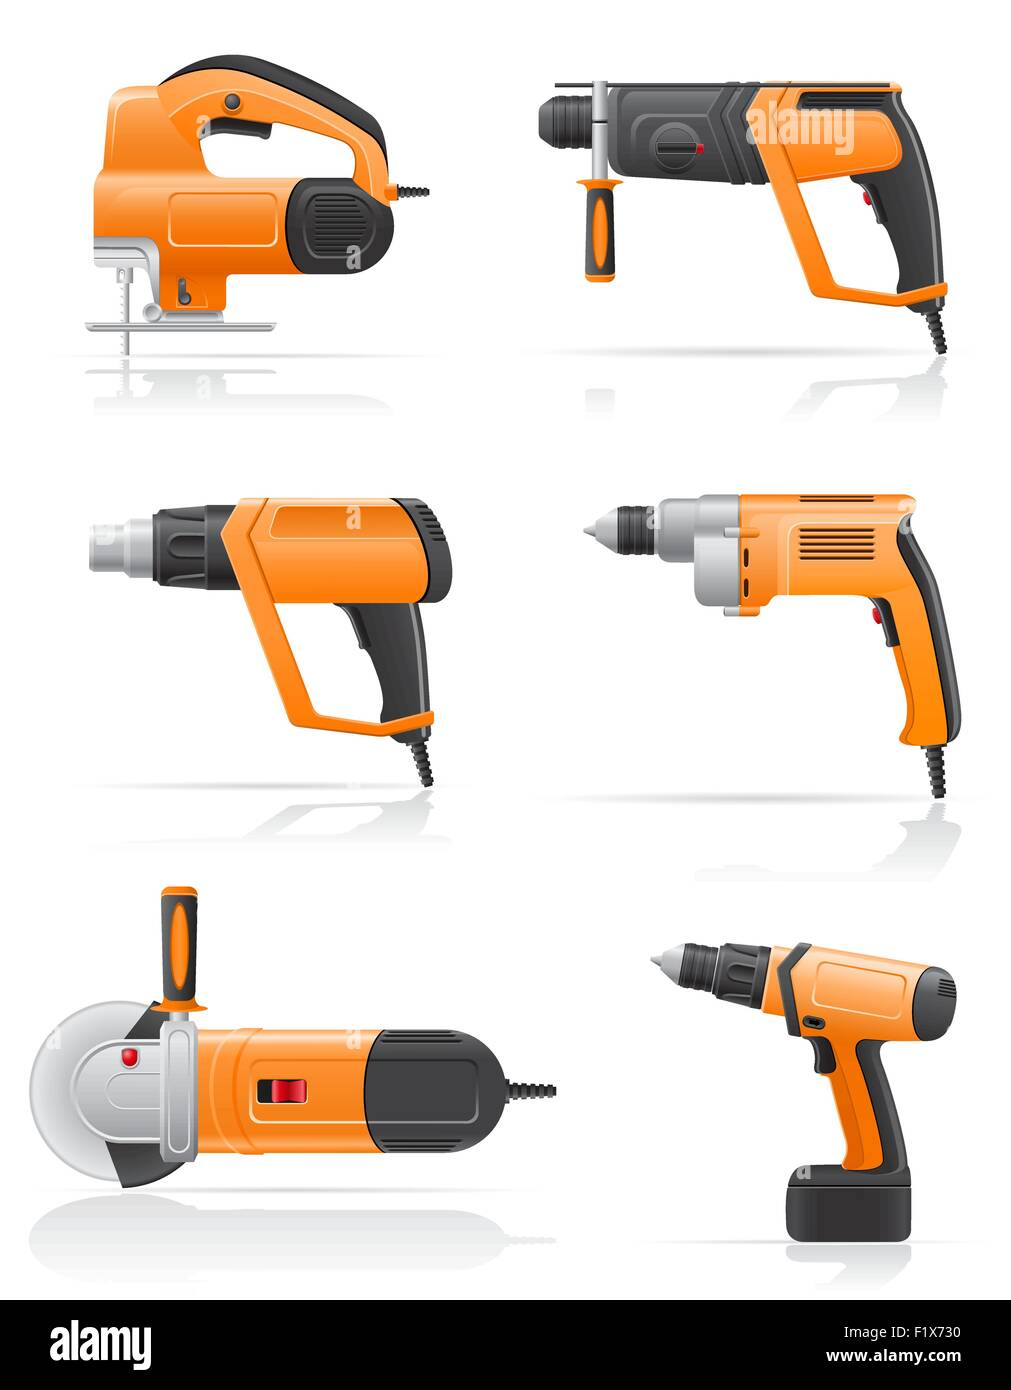 electric tools set icons vector illustration isolated on white background - Stock Vector